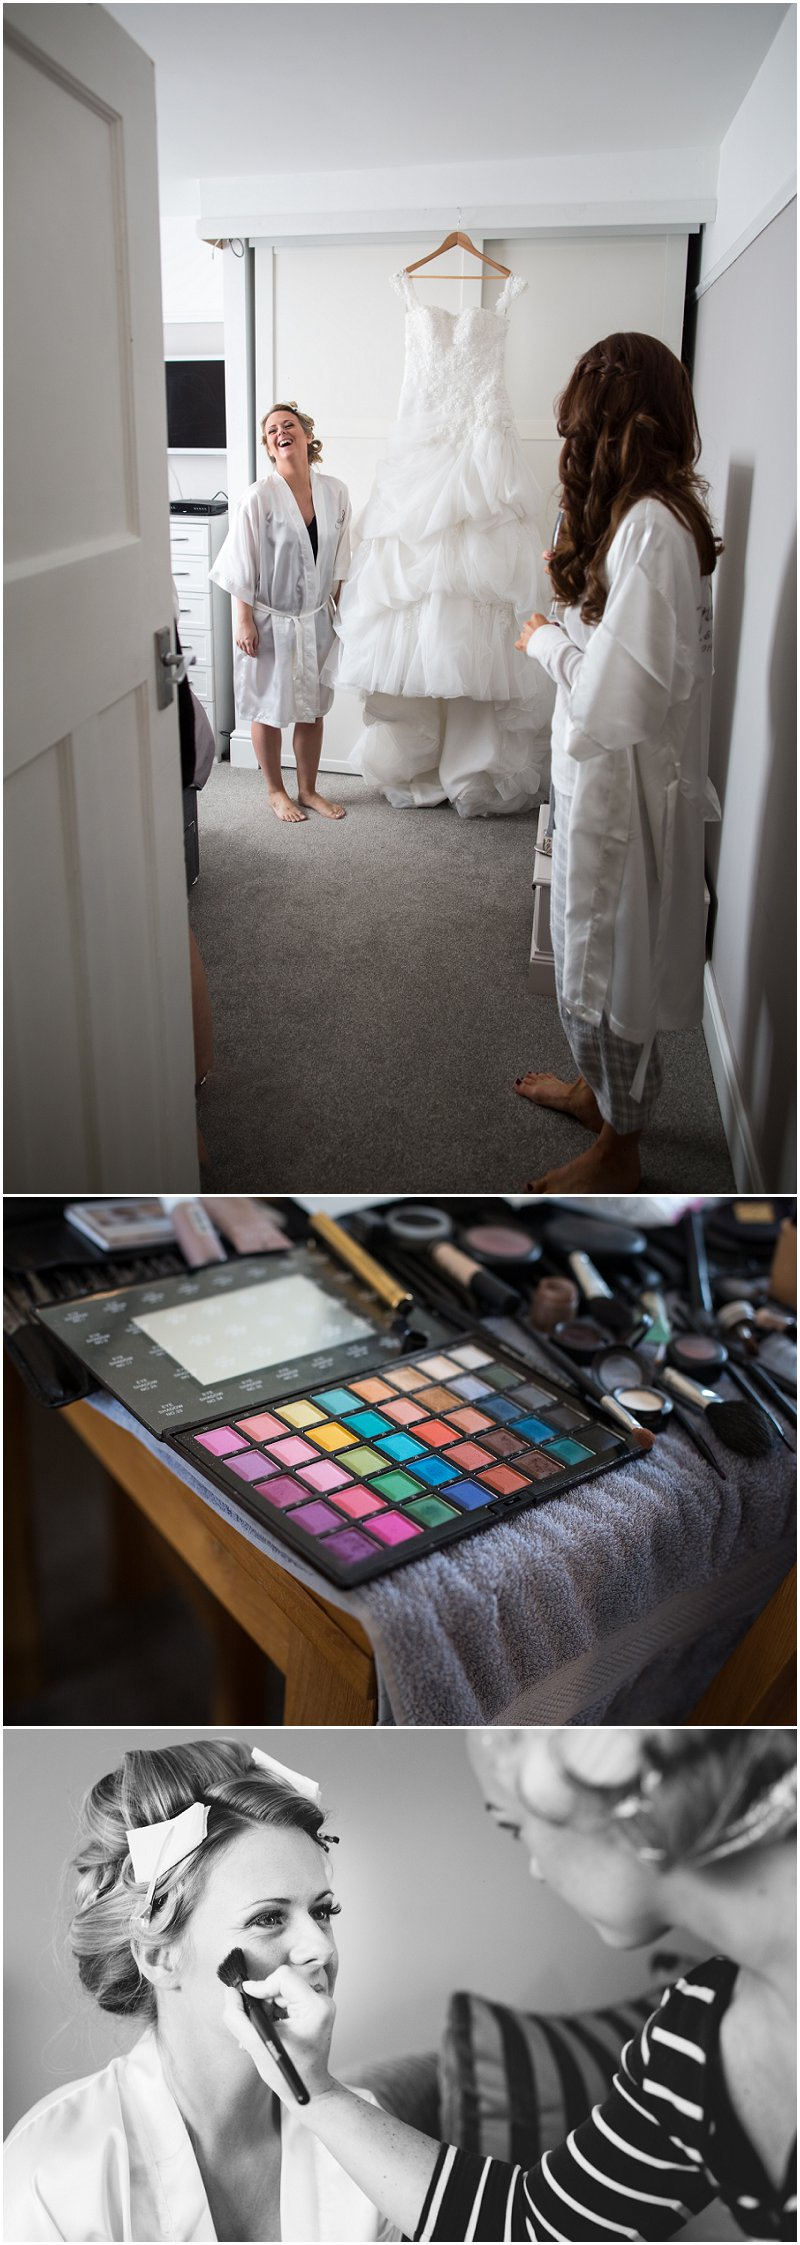 Bridal Prep pictures at a Sandbach wedding